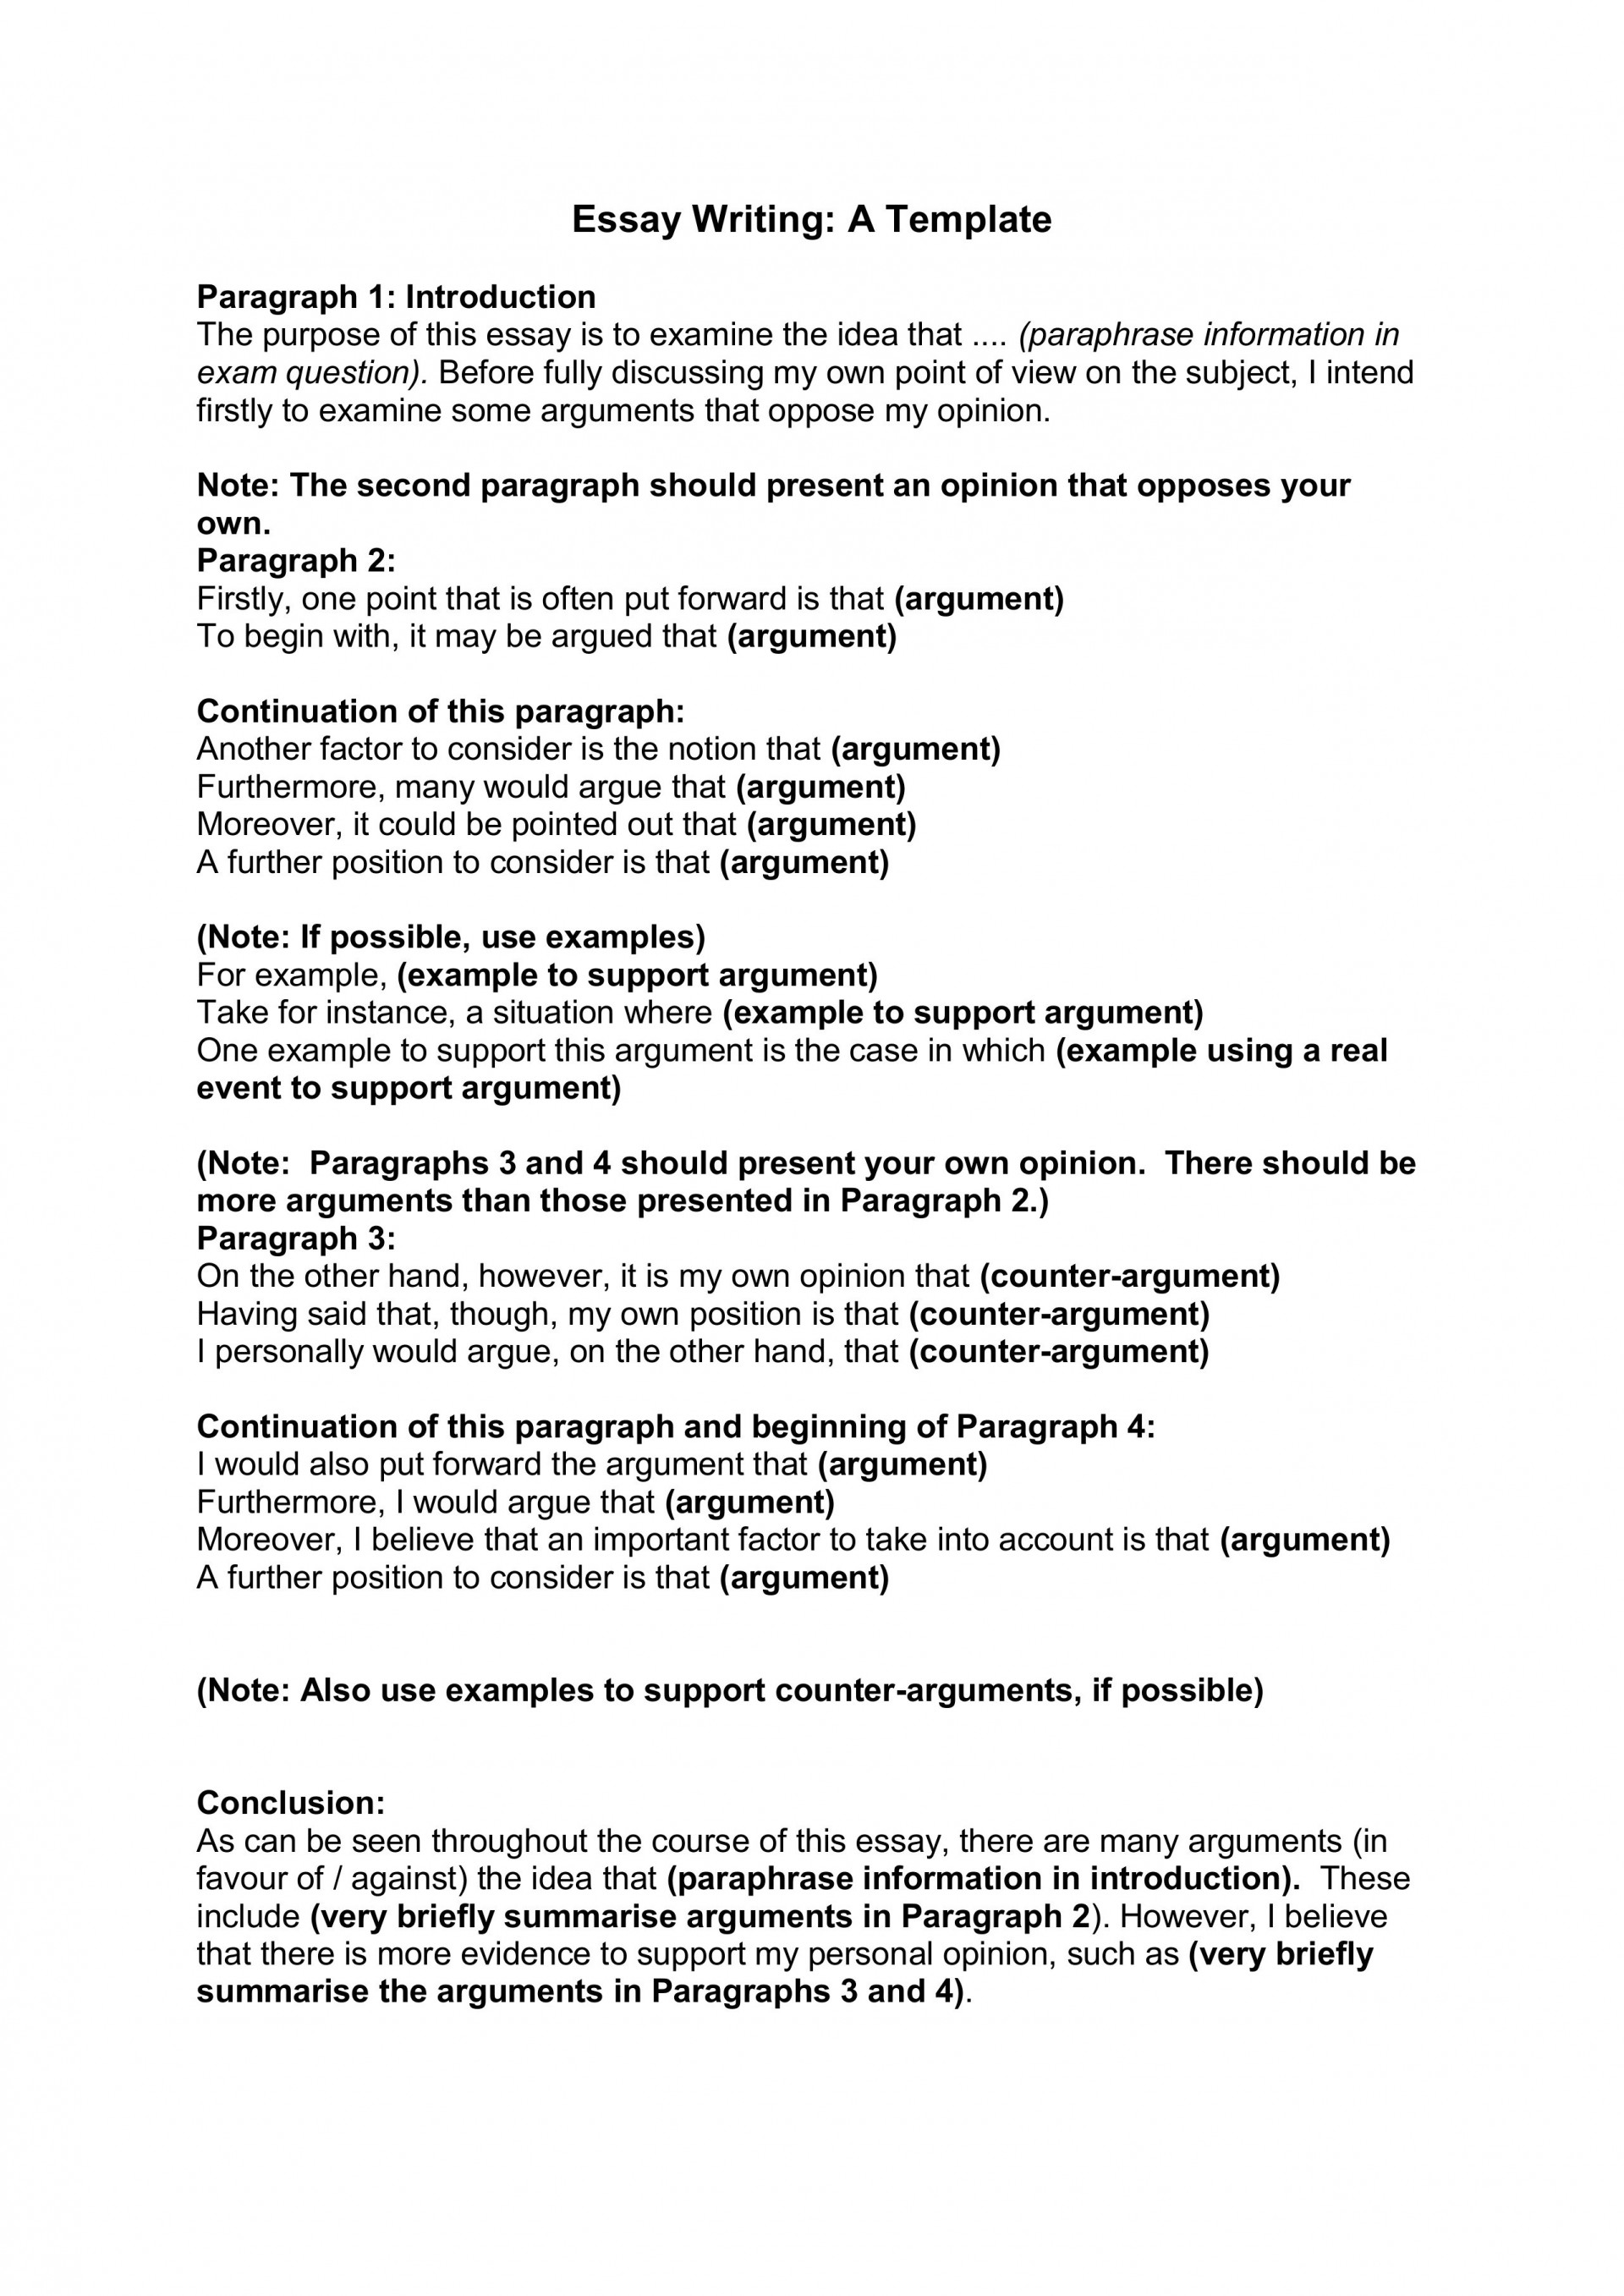 019 I Believe Essay Examples Example Image Writing Homework Service Byassignmentdepa Good This Topics Template For P Phenomenal Personal College 1920